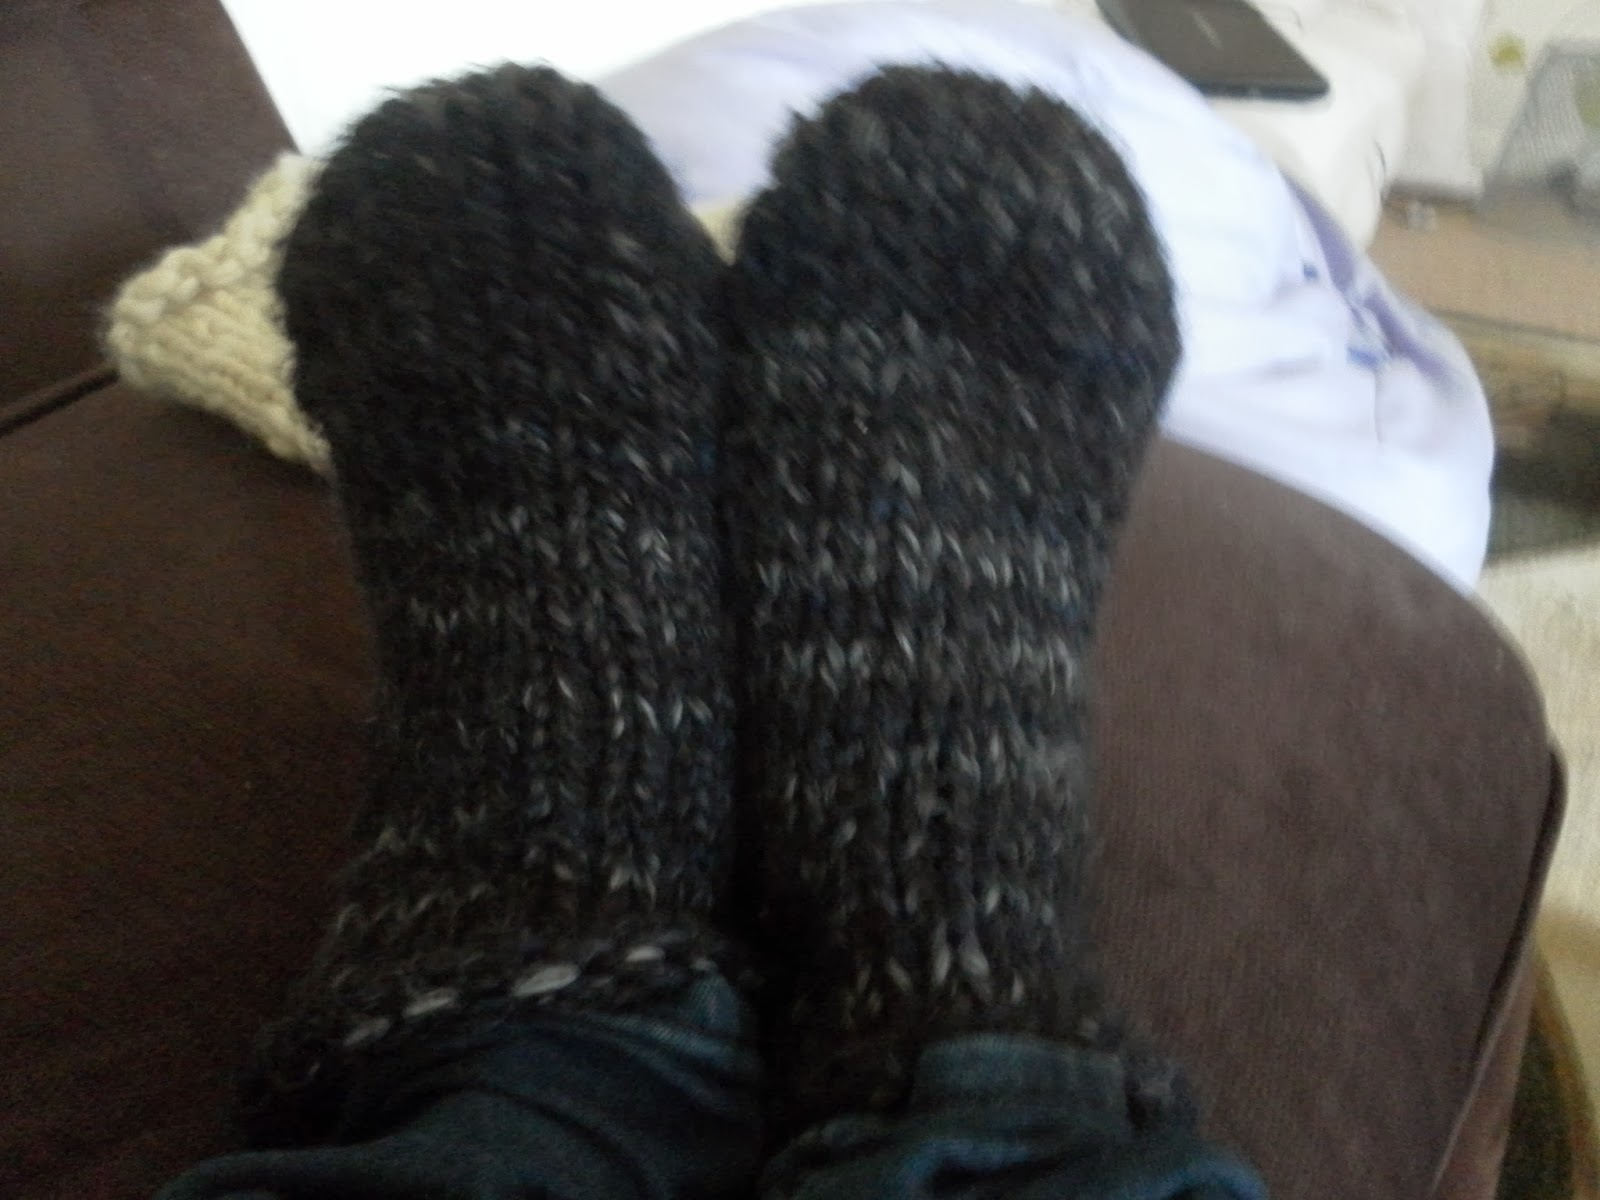 Homemade luxuries - lessons from a 21st century lady: Hand knitted socks